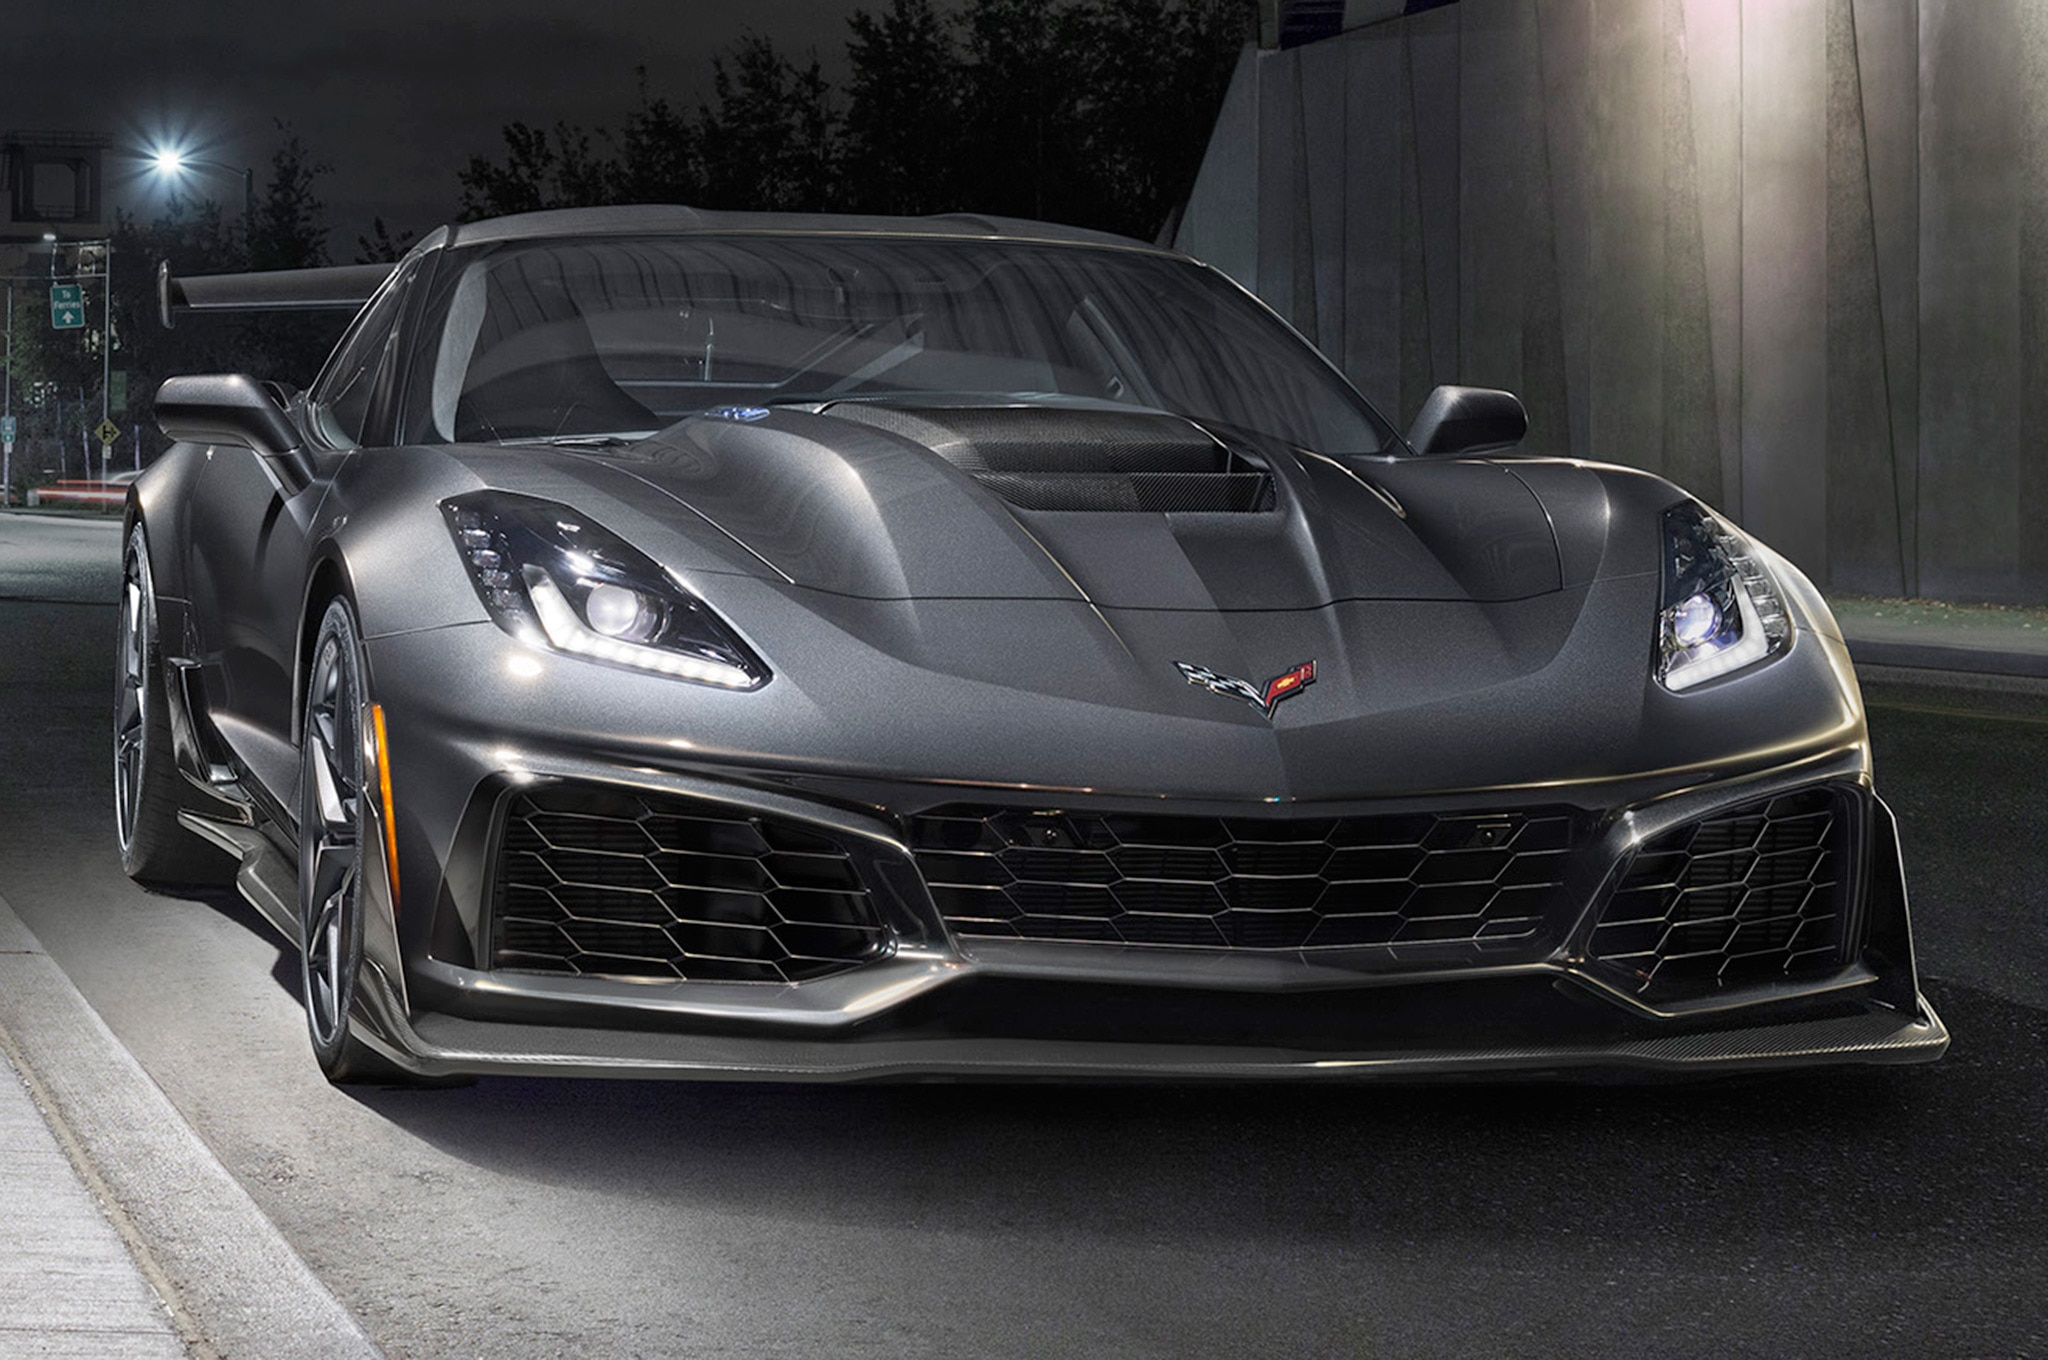 Corvette ZR1: Return of the King